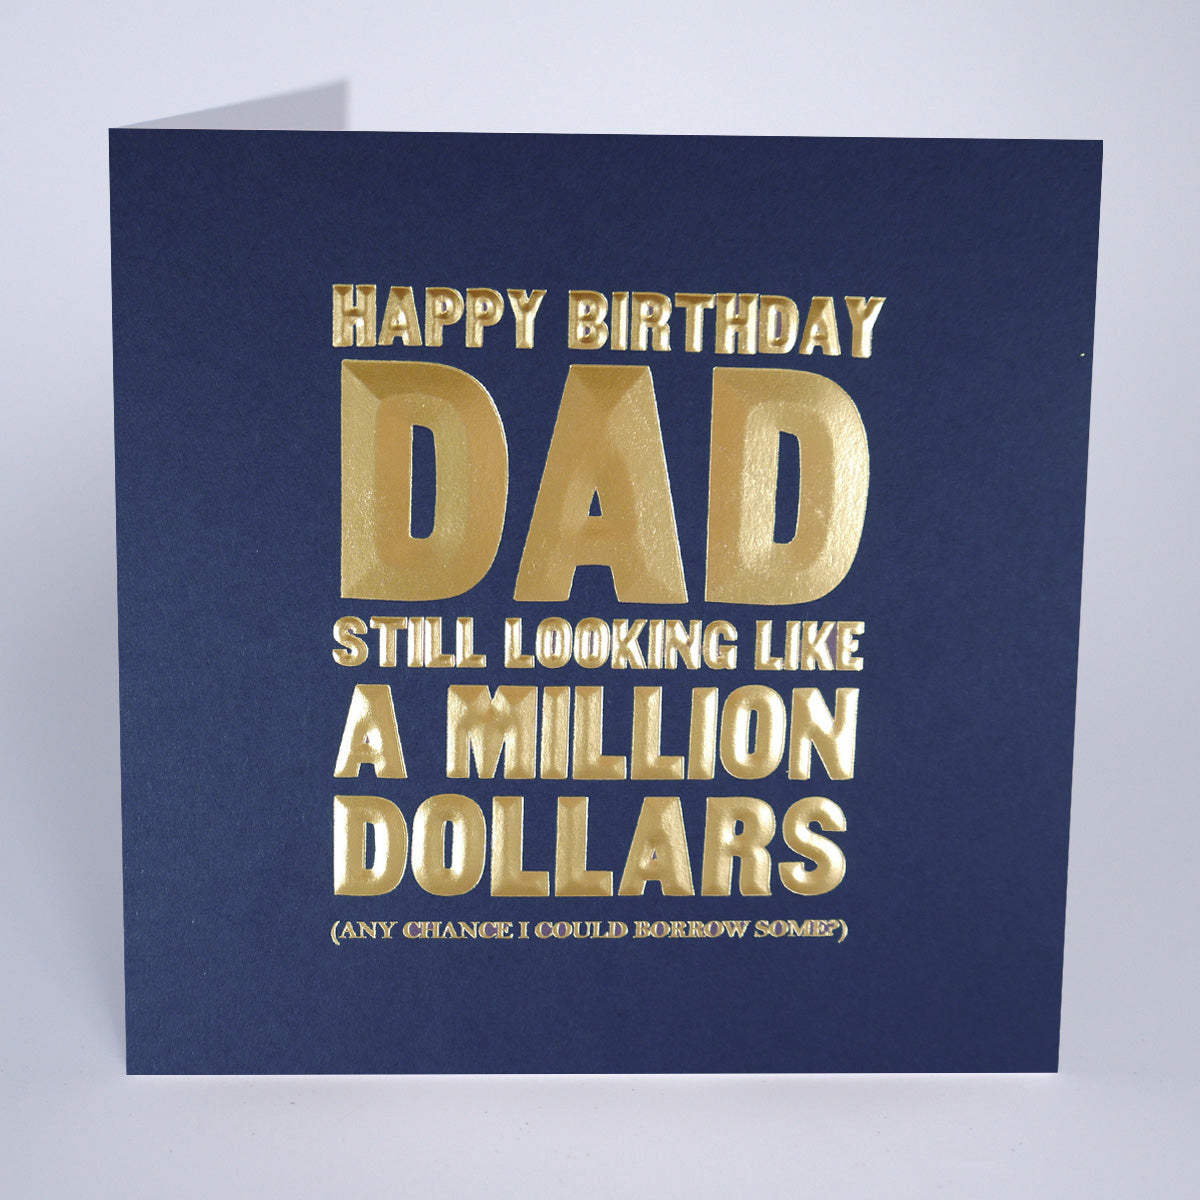 Happy Birthday Dad - A Million Dollars